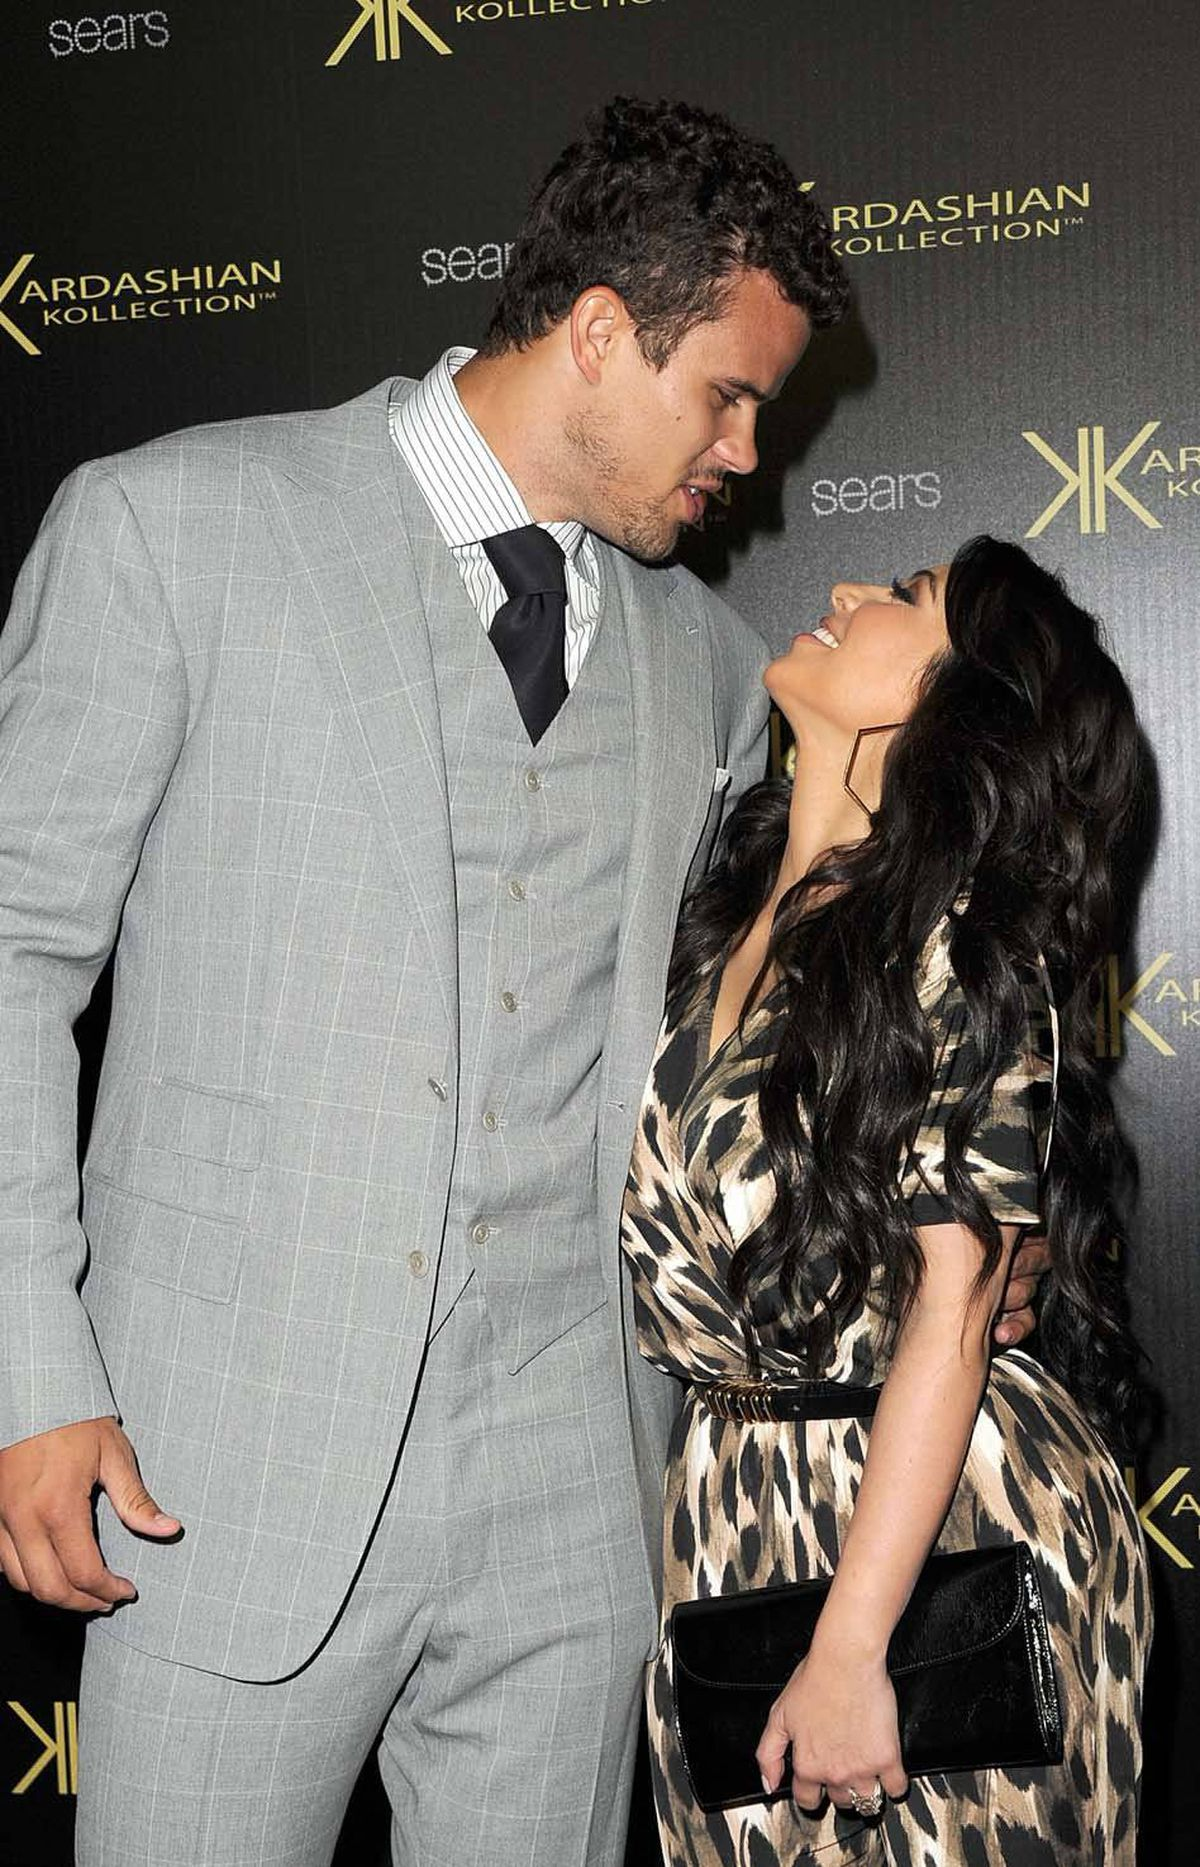 The couple, three days before their much-publicized wedding, attend the launch of a new line of clothes, the Kardashian Kollection in Hollywood on Aug. 17.